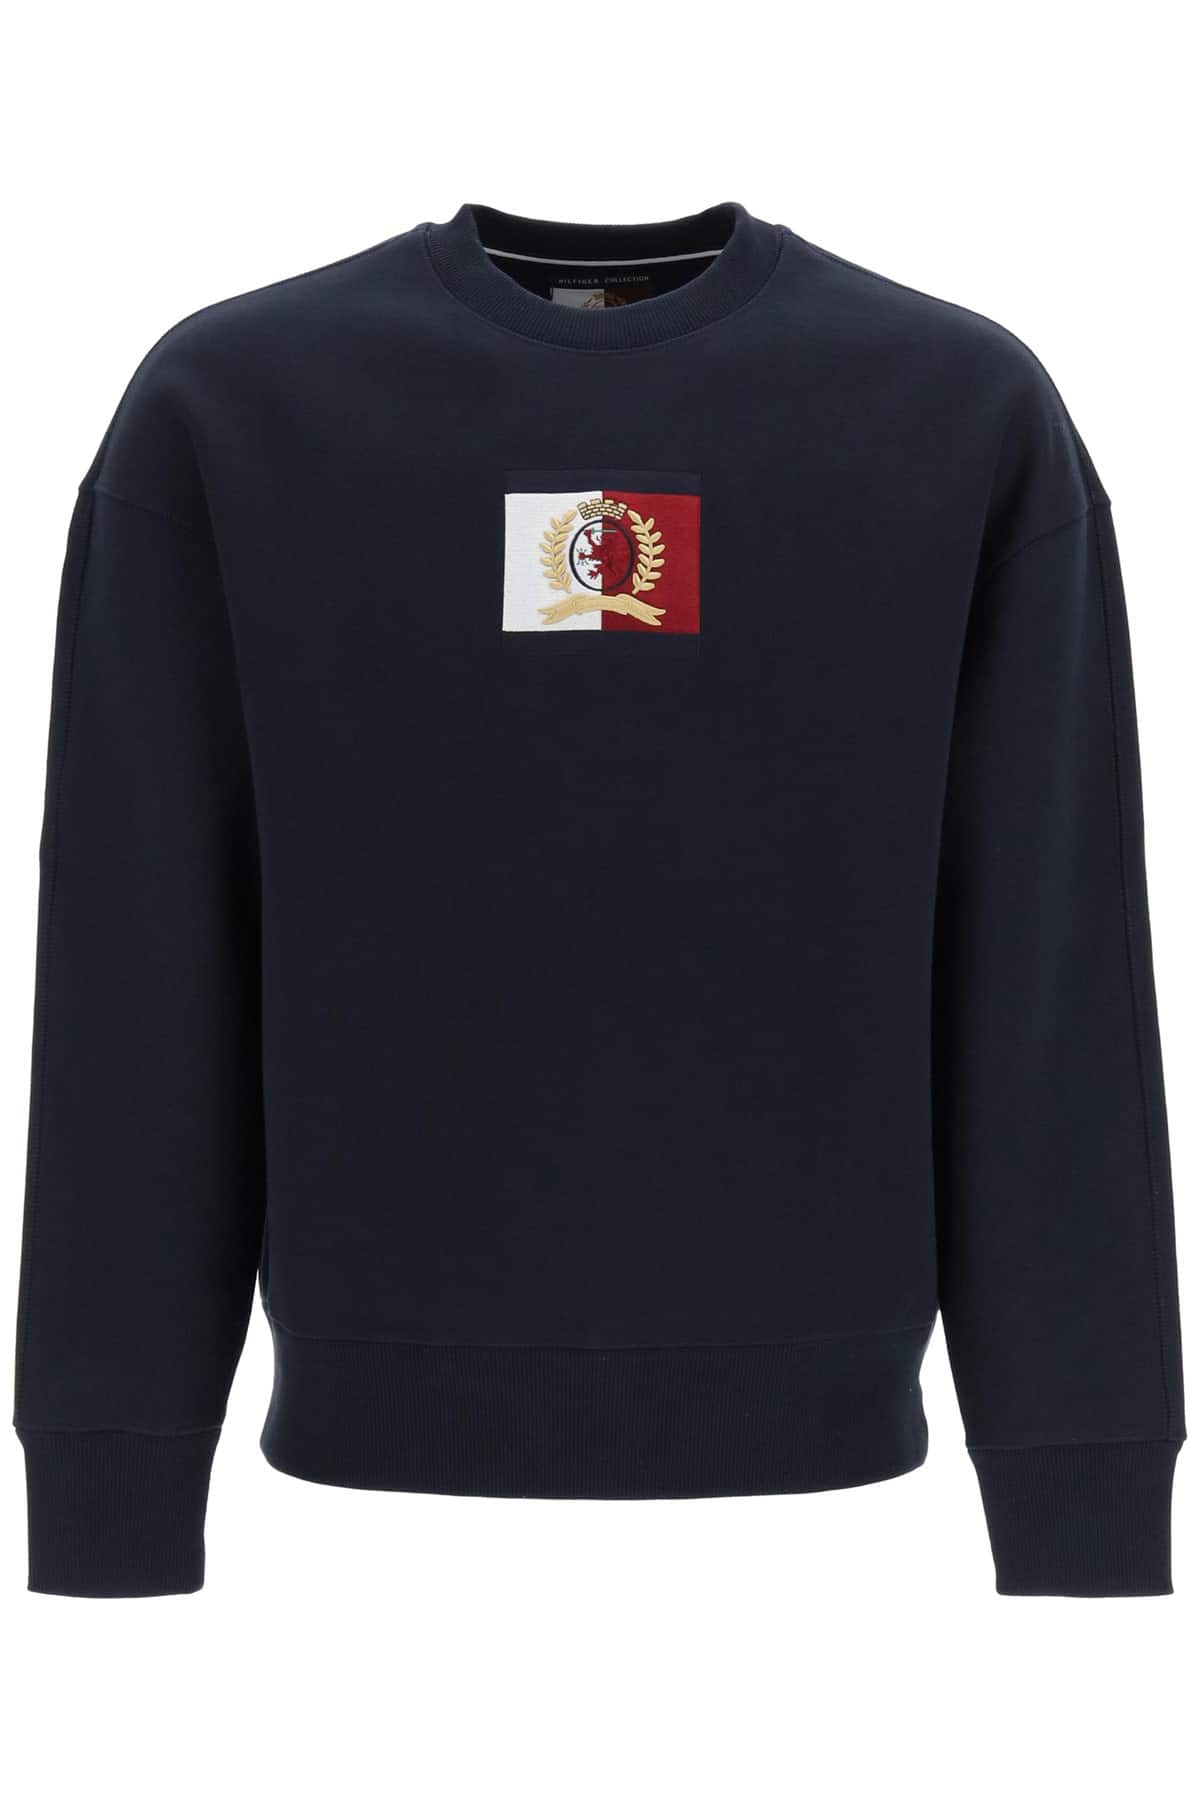 TOMMY HILFIGER COLLECTION CREW NECK SWEATSHIRT WITH THC EMBLEM PATCH XL Blue Cotton